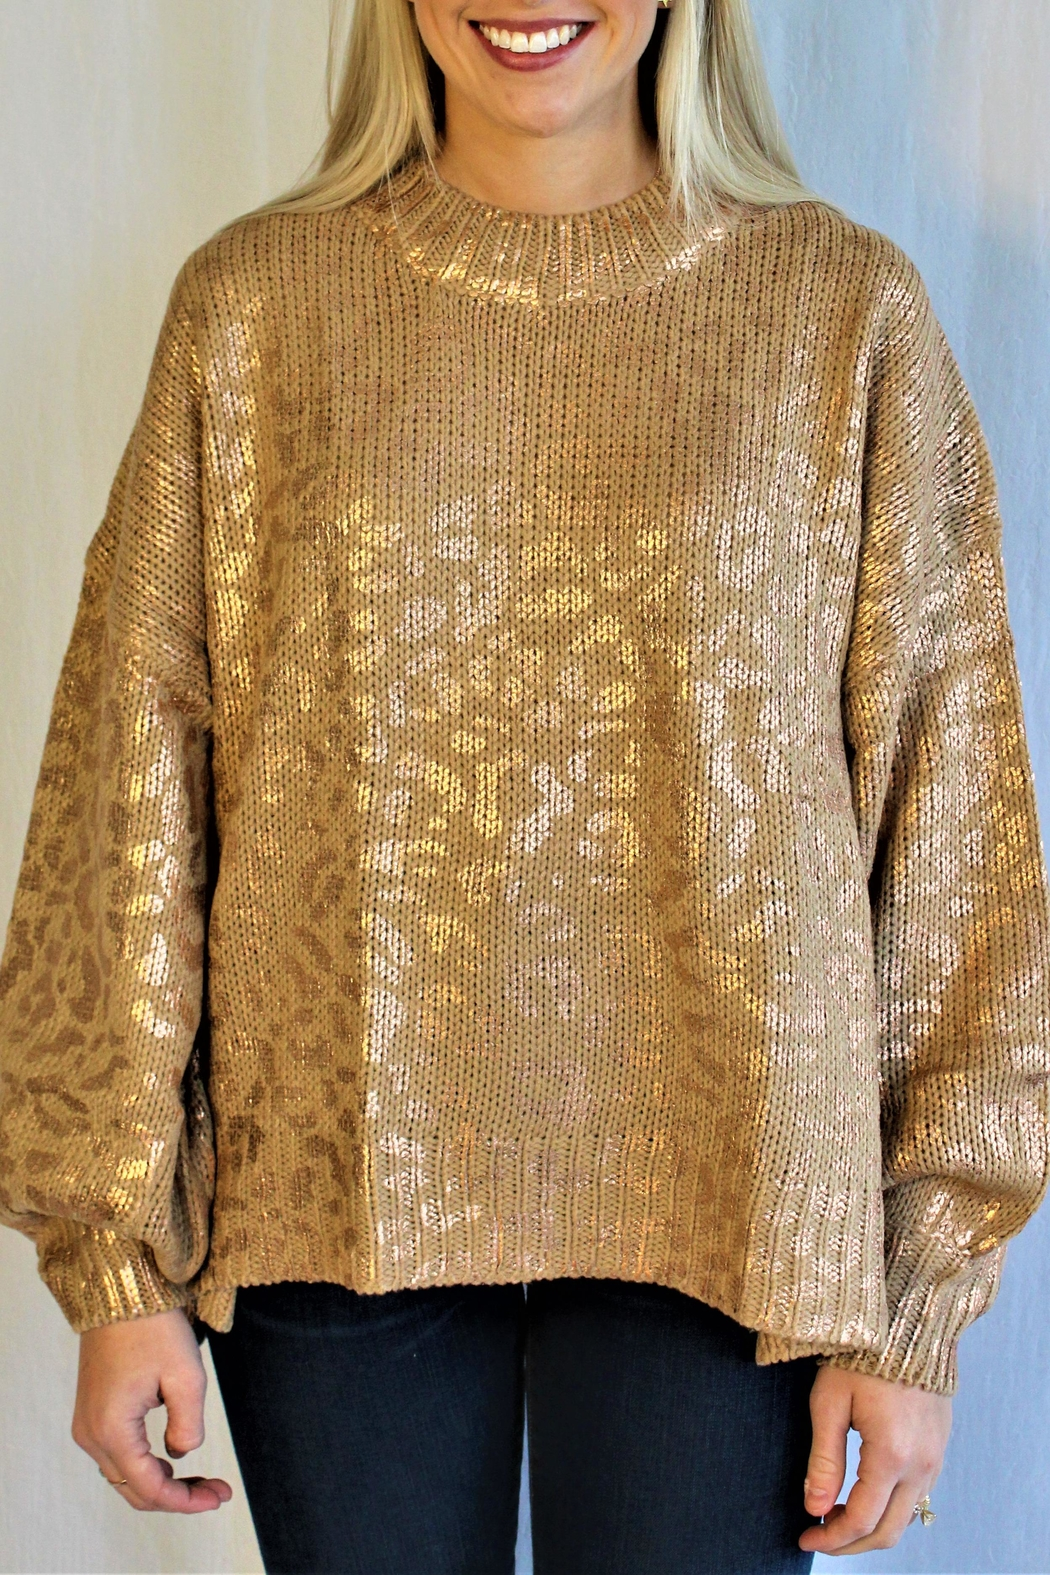 And the Why Gold Cheetah Sweater - Main Image